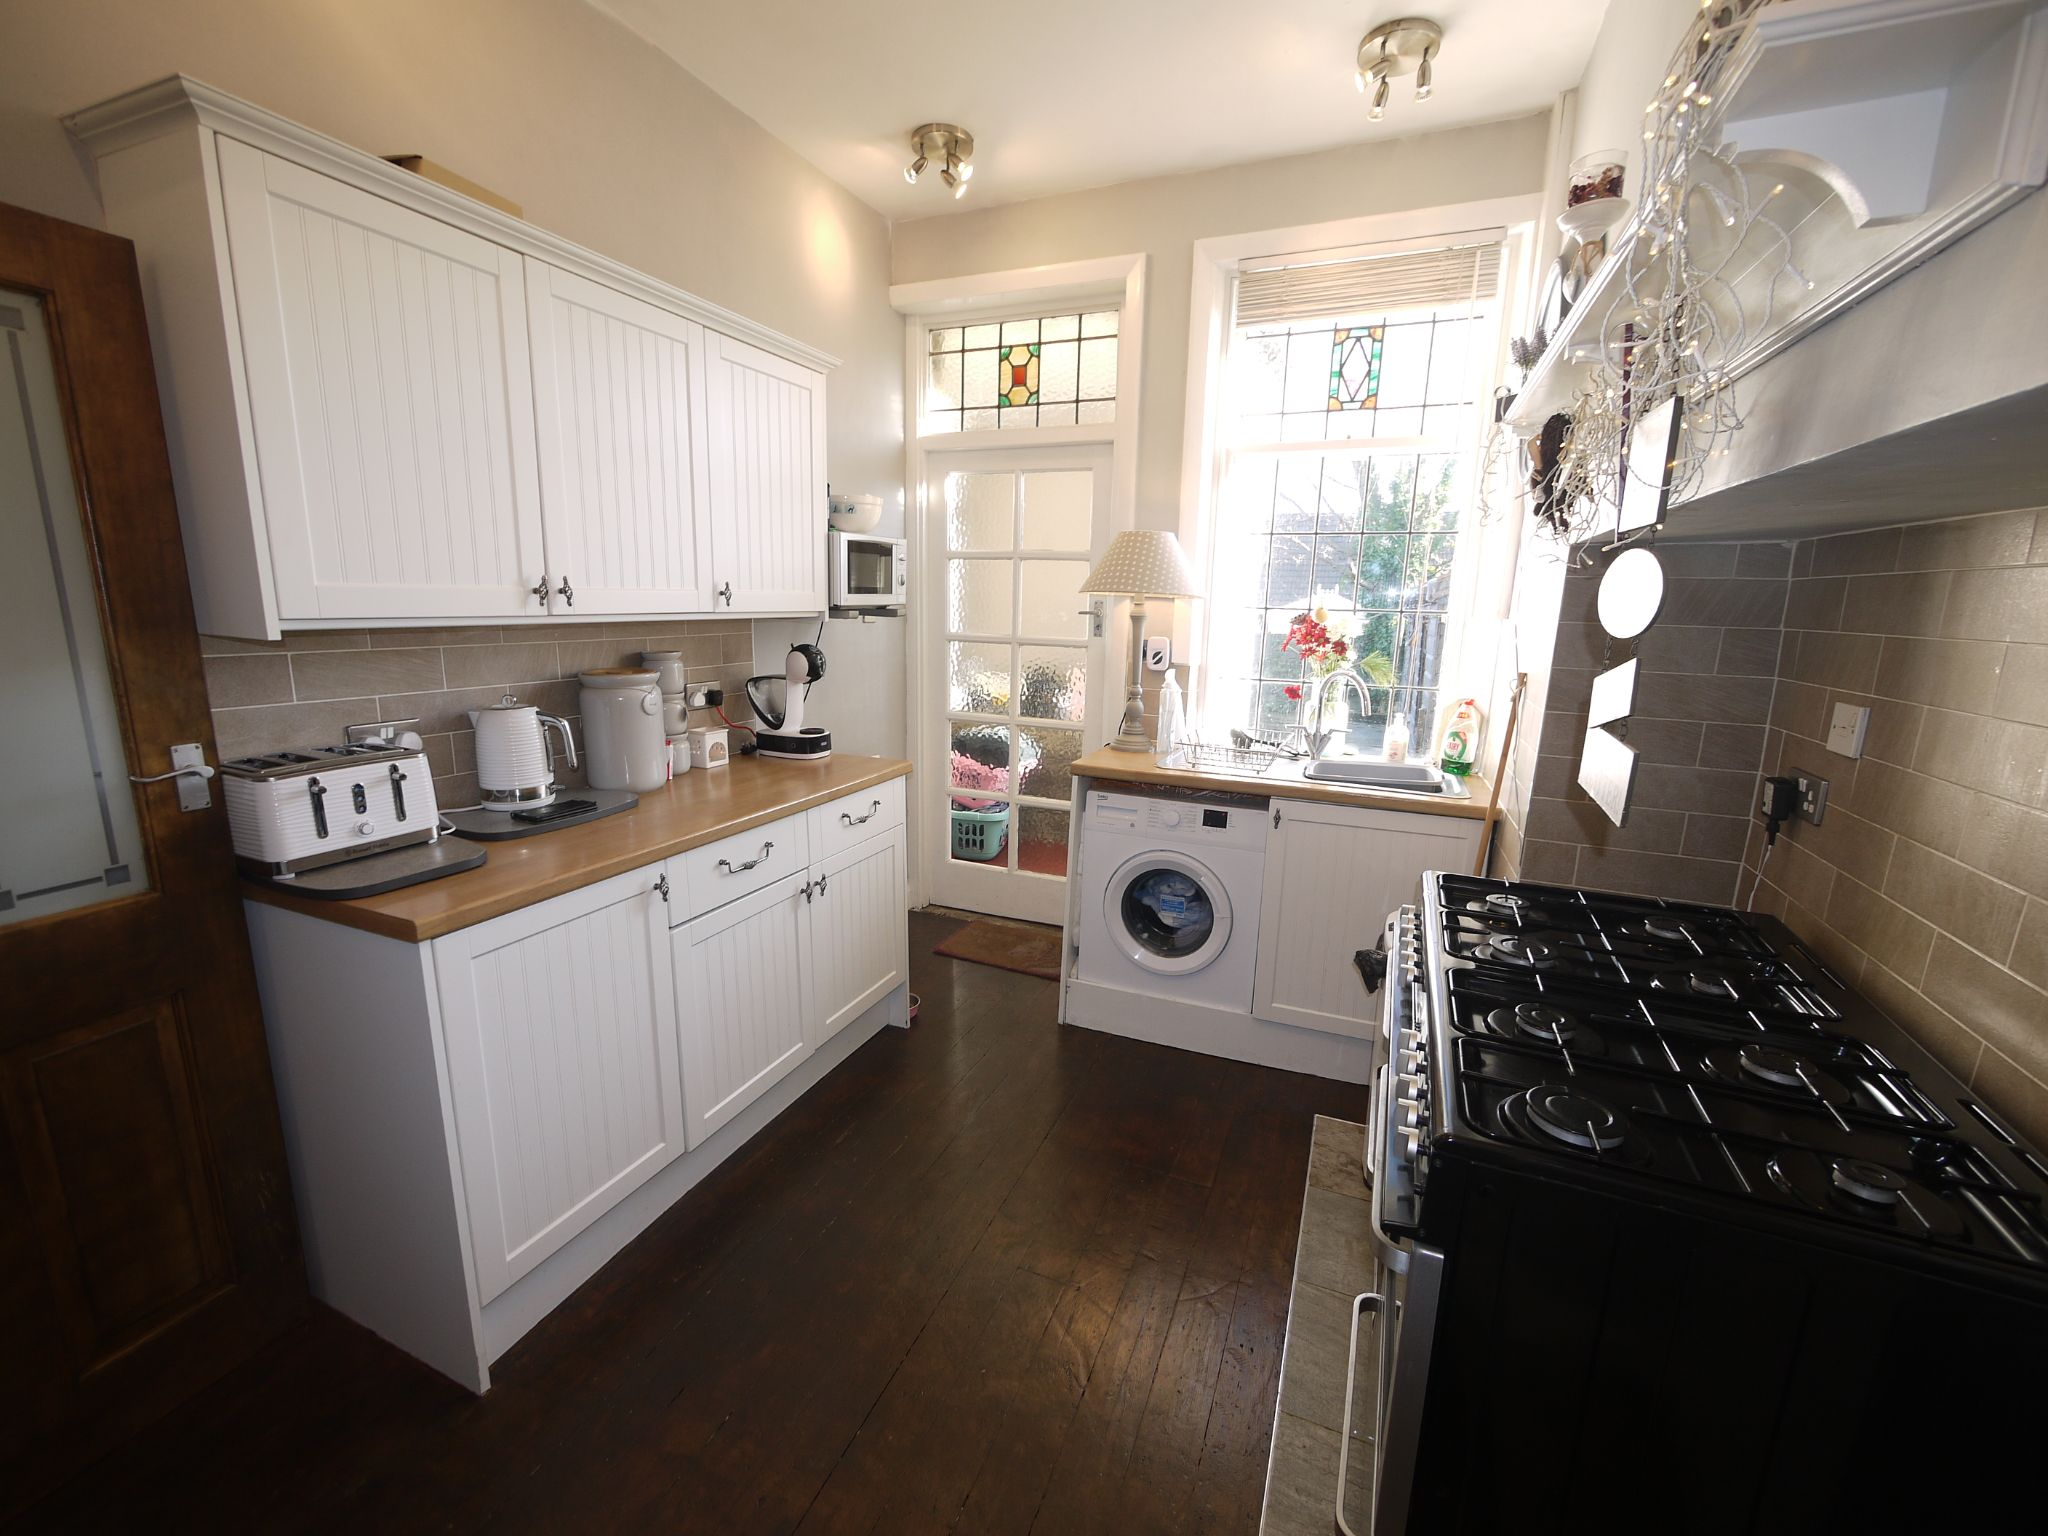 4 bedroom semi-detached house SSTC in Brighouse - Photograph 10.